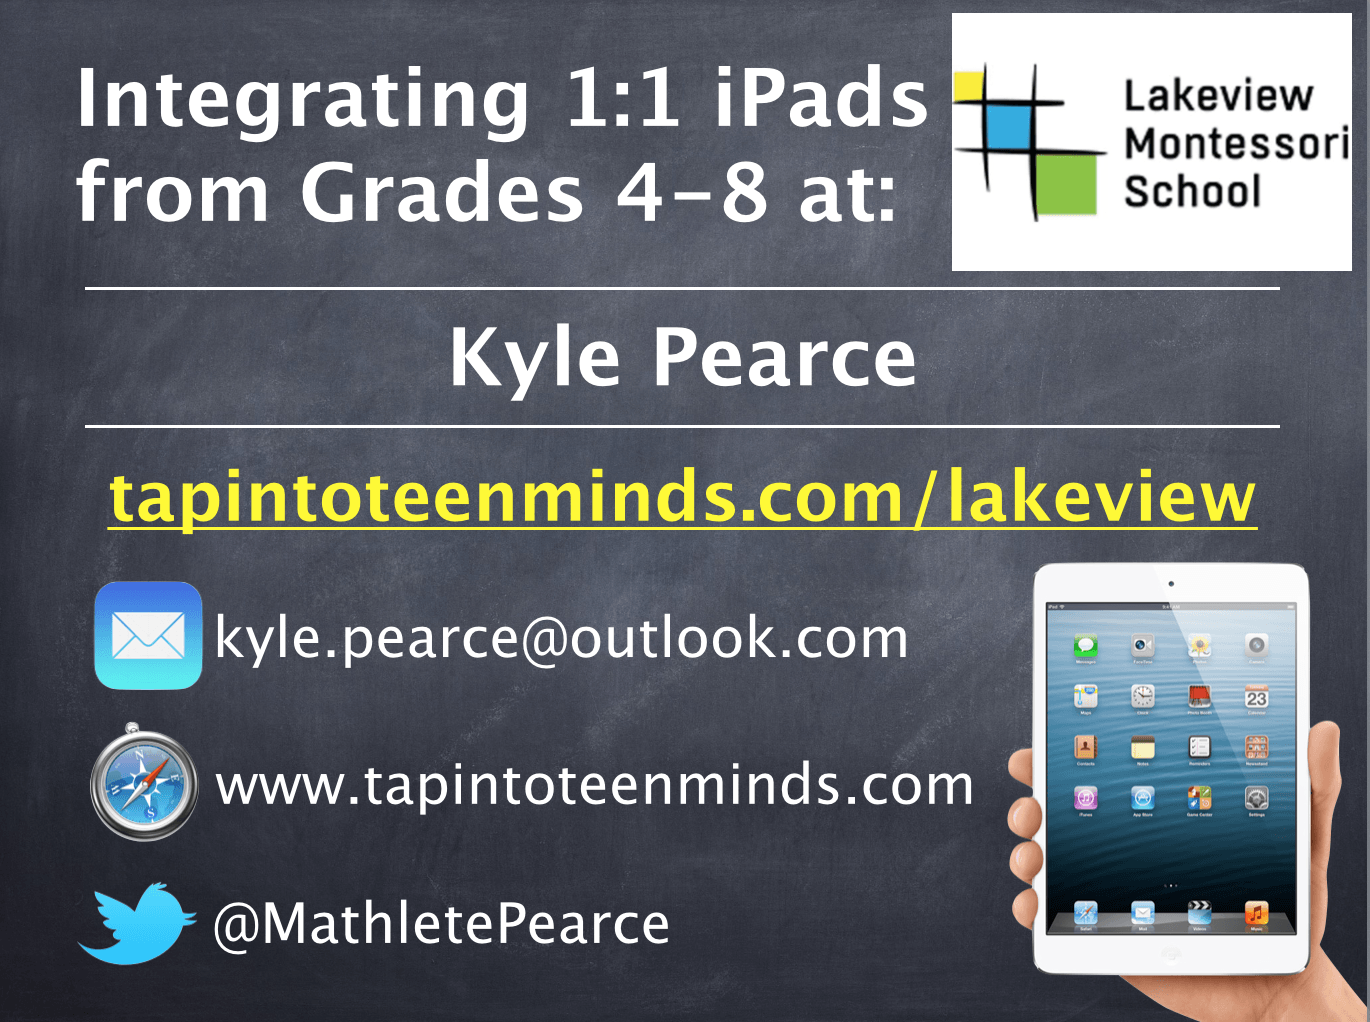 Lakeview Montessori 1:1 iPad Implementation Session Resources